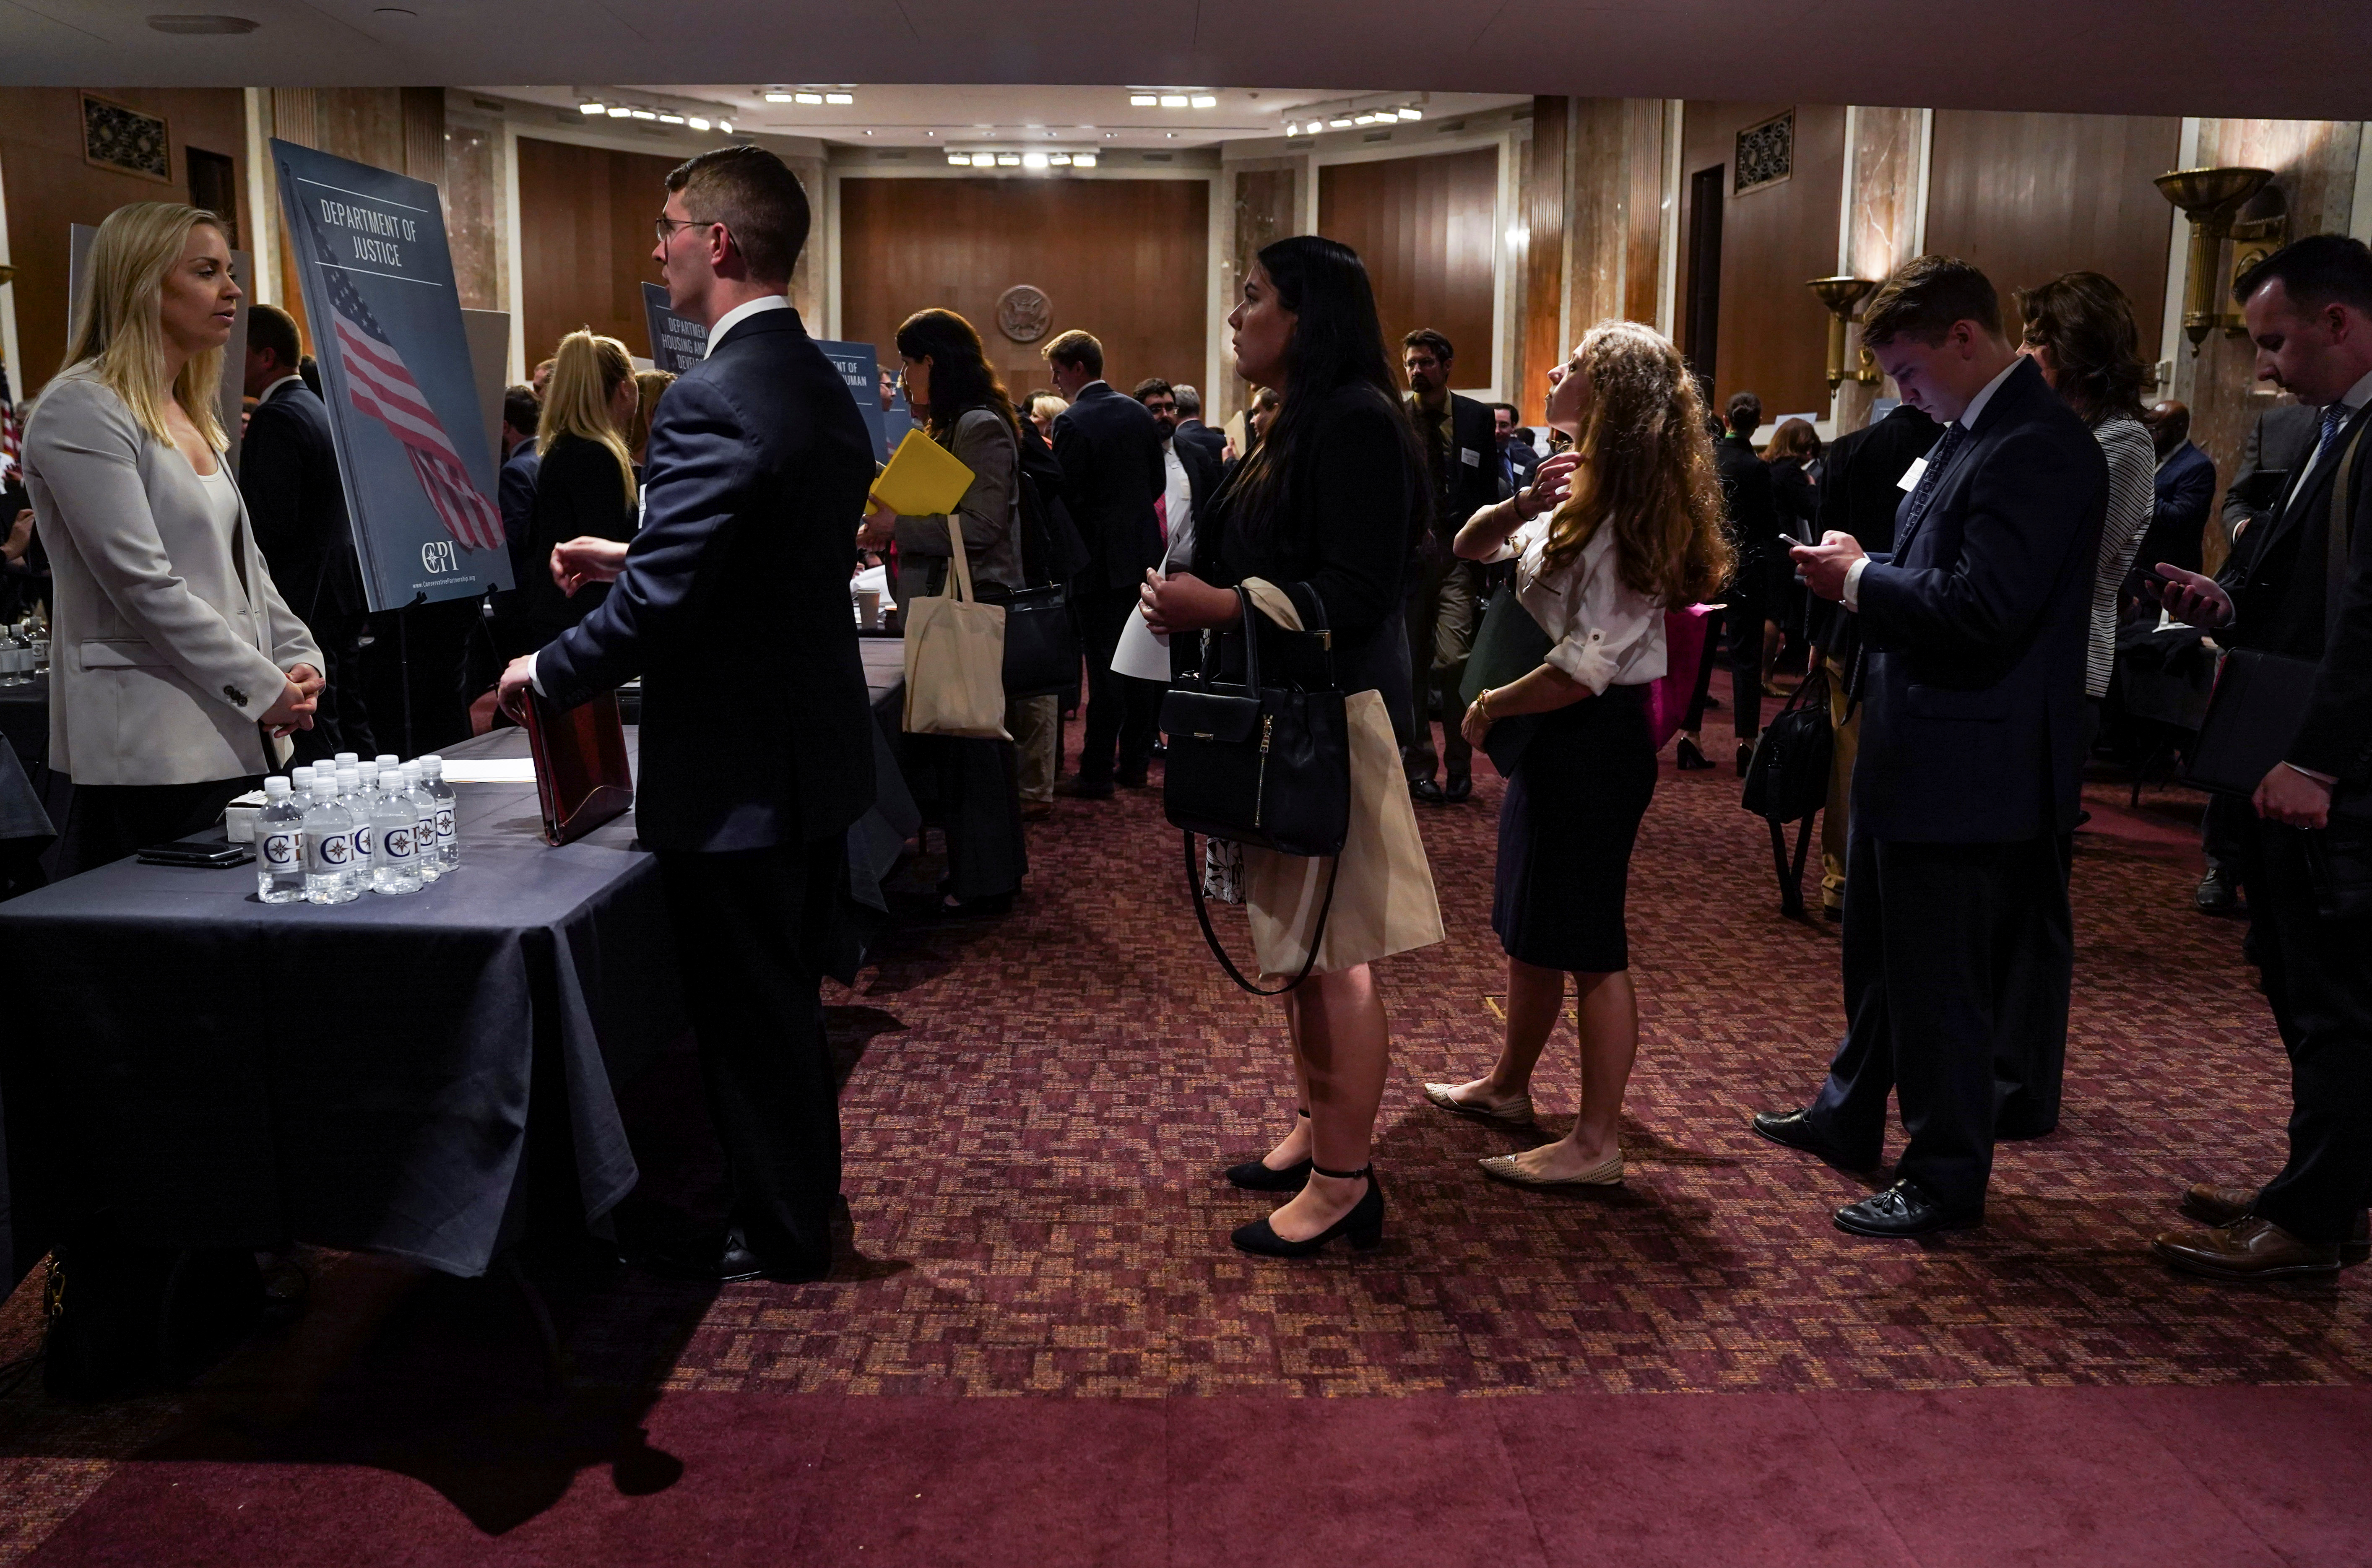 People wait in line at a stand during the Executive Branch Job Fair hosted by the Conservative Partnership Institute at the Dirksen Senate Office Building in Washington, U.S., June 15, 2018. REUTERS/Toya Sarno Jordan